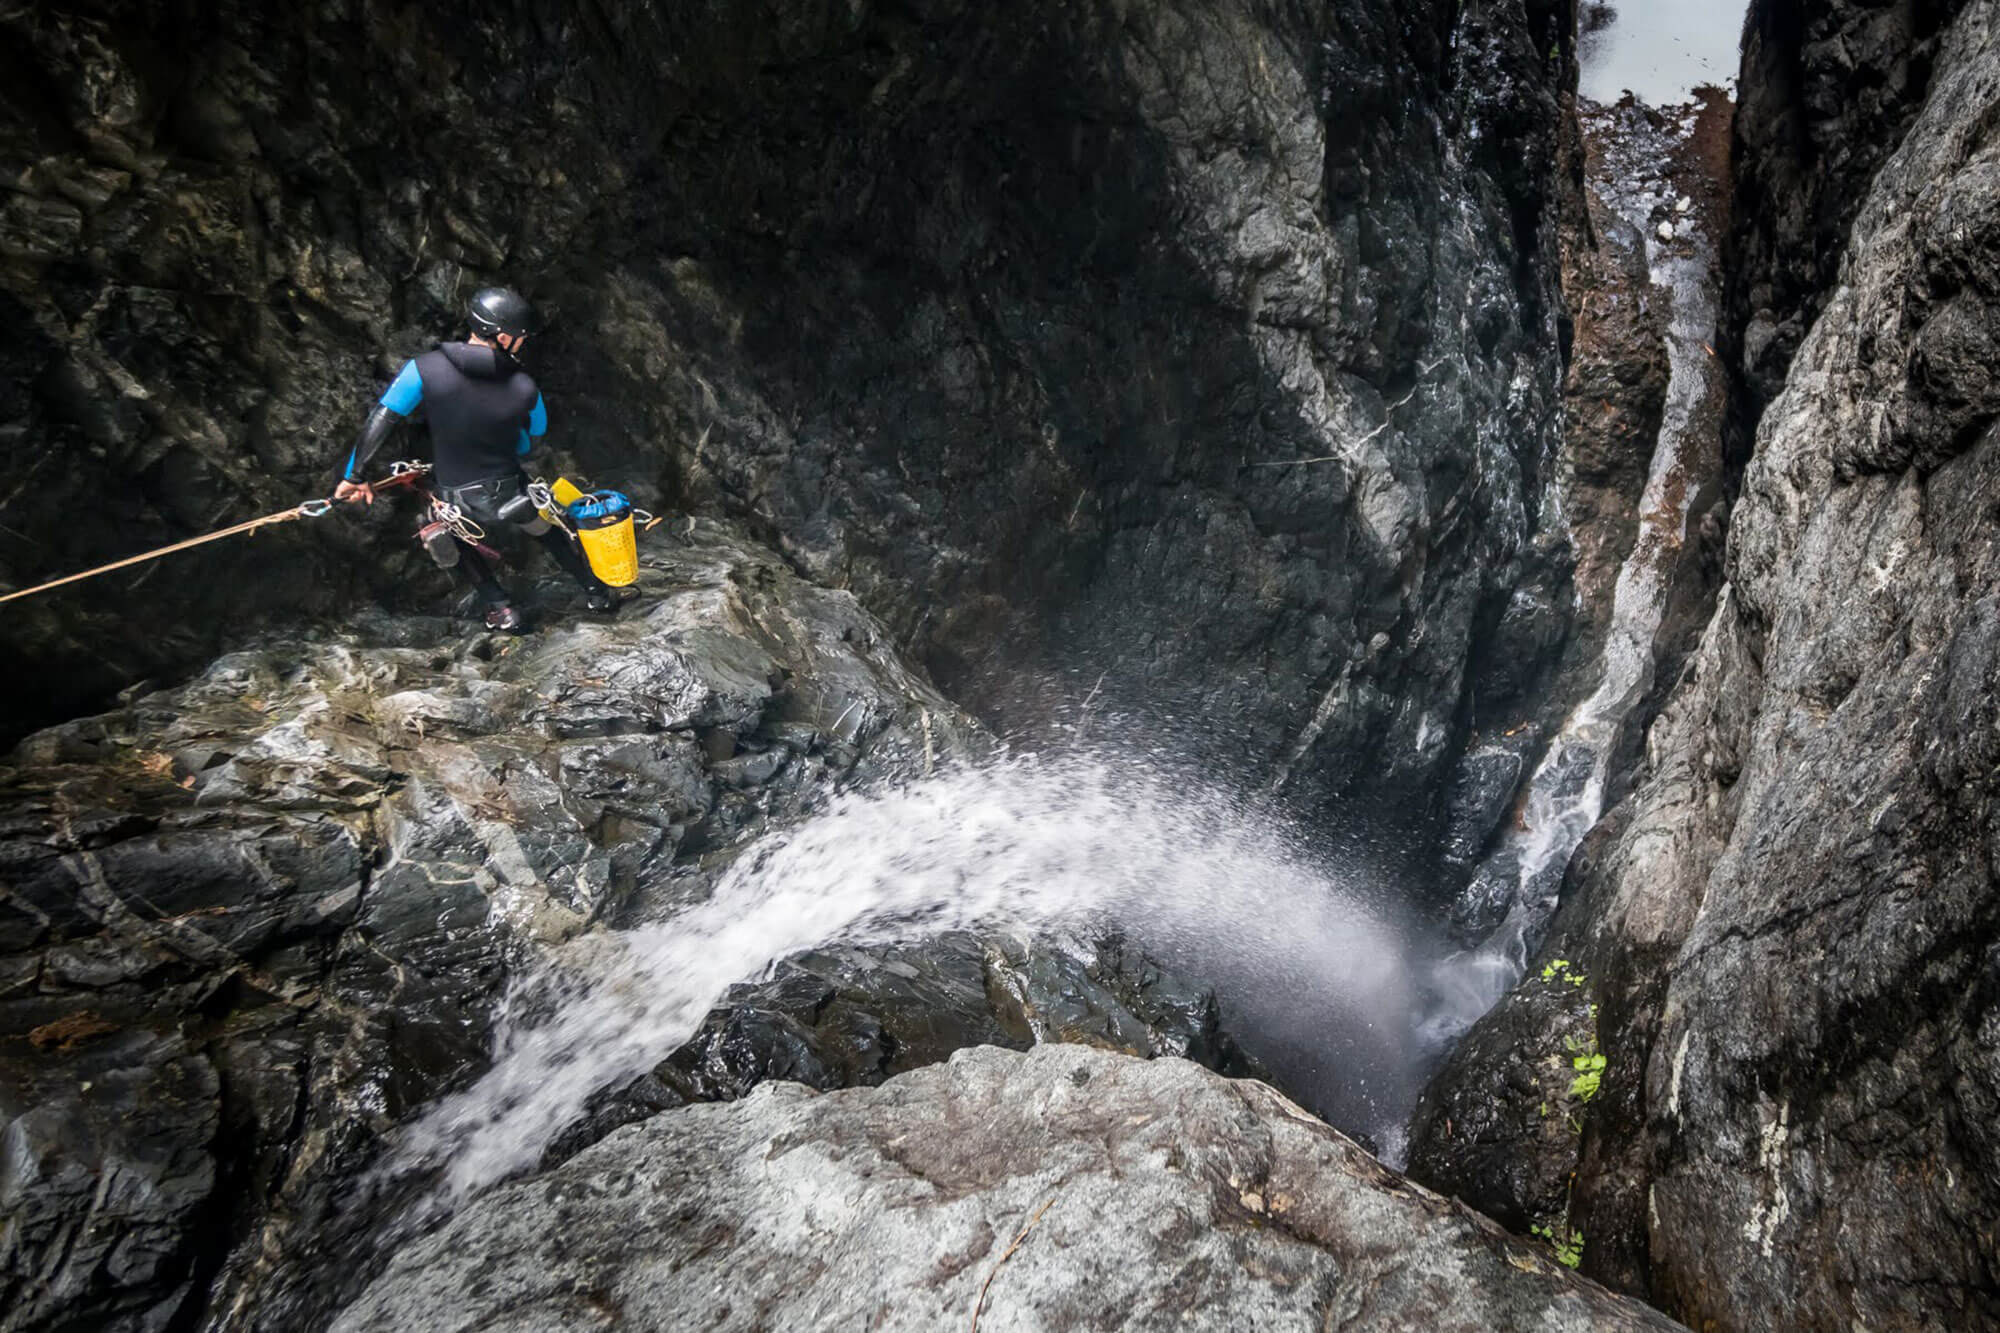 Pete Choate taking a look over the edge in Tesseract, a deep, low flow canyon off the Middle Fork Snoqualmie River, Washington, first descent 2018. Photo by Kevin Steffa.